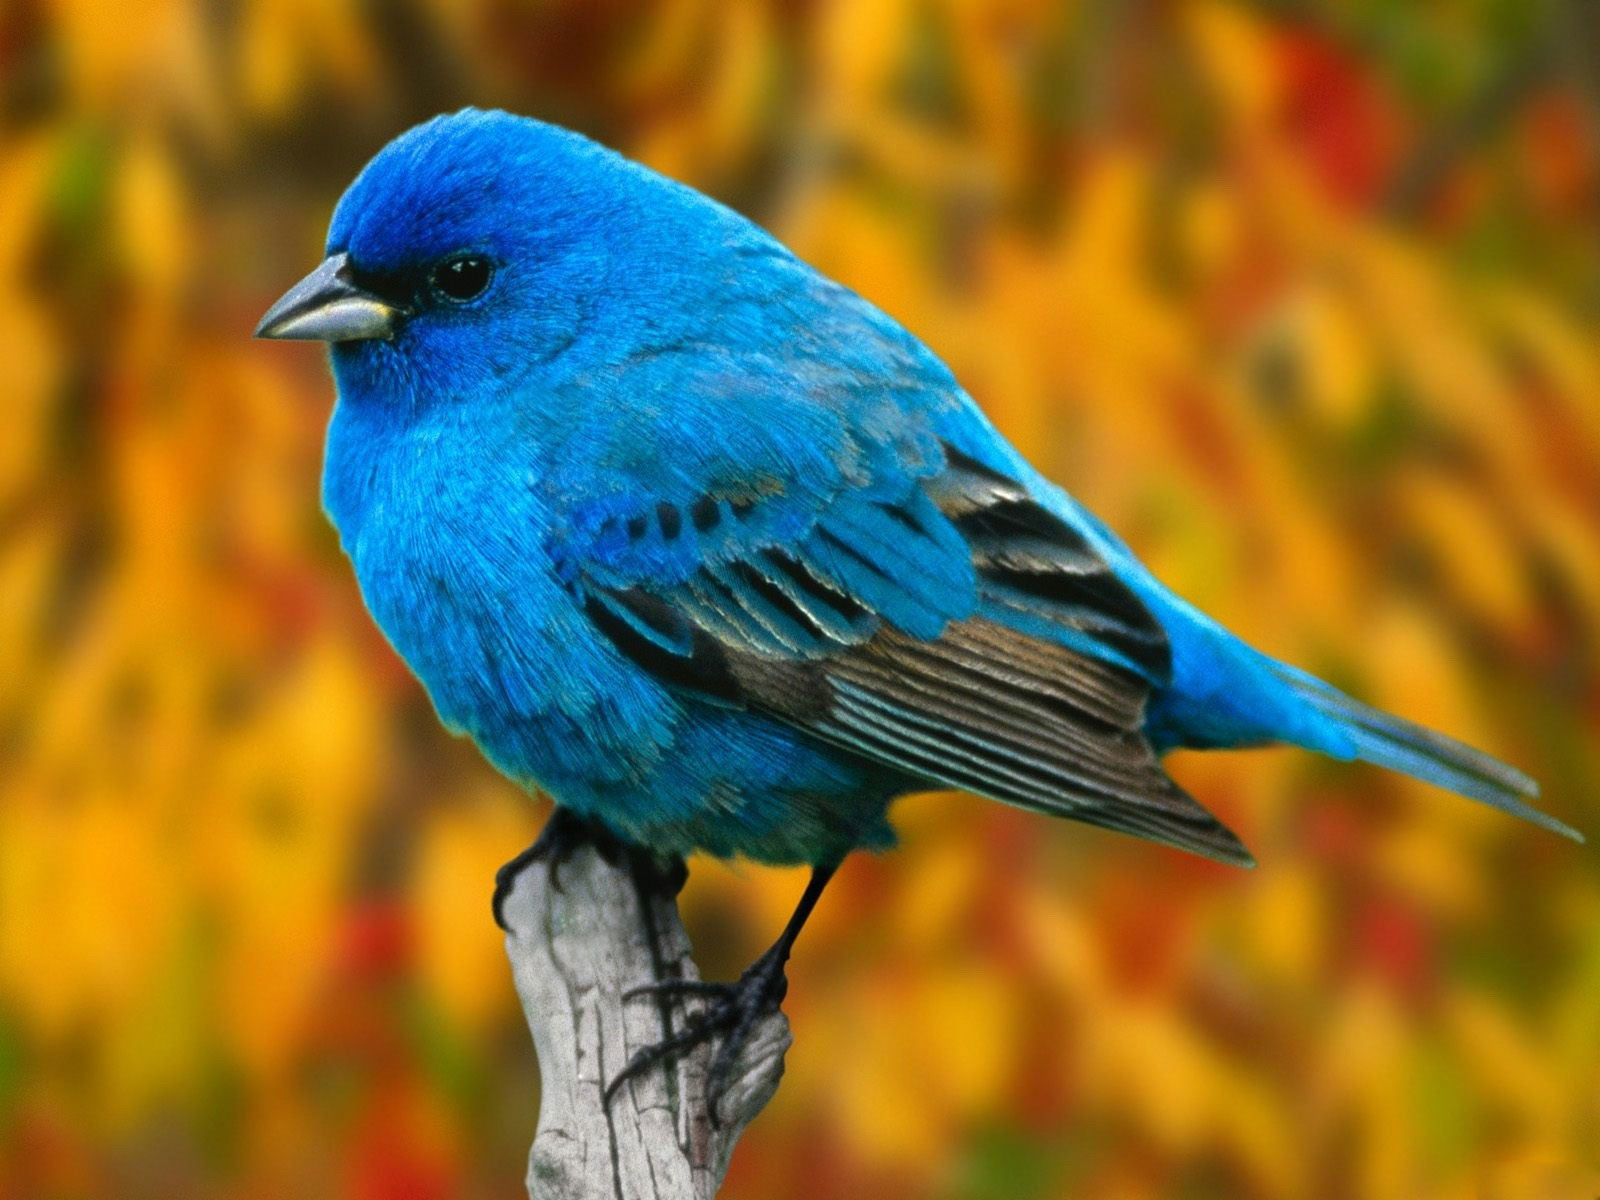 bird wallpapers birds hd wallpapers birds wallpapers hd bird wallpaper